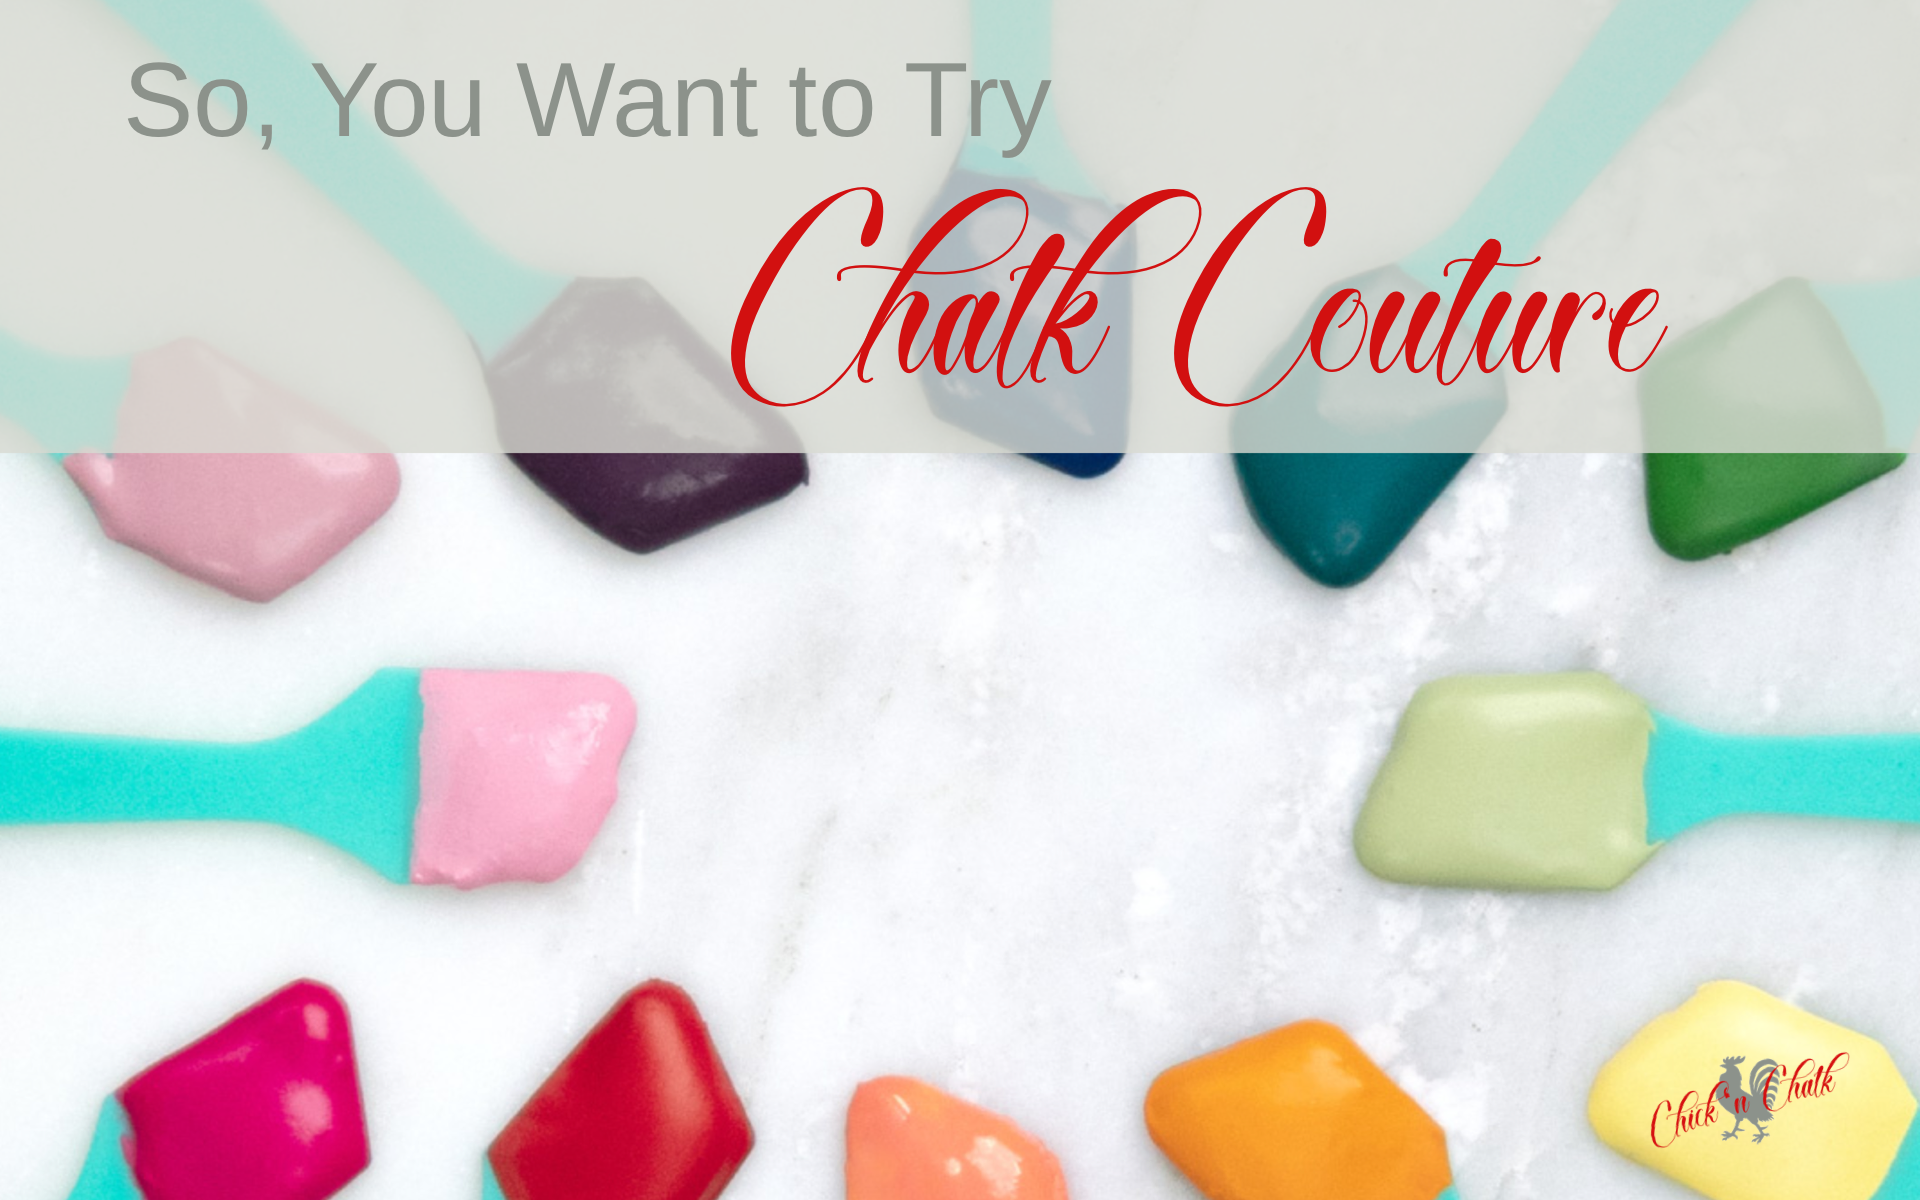 Try Chalk Couture